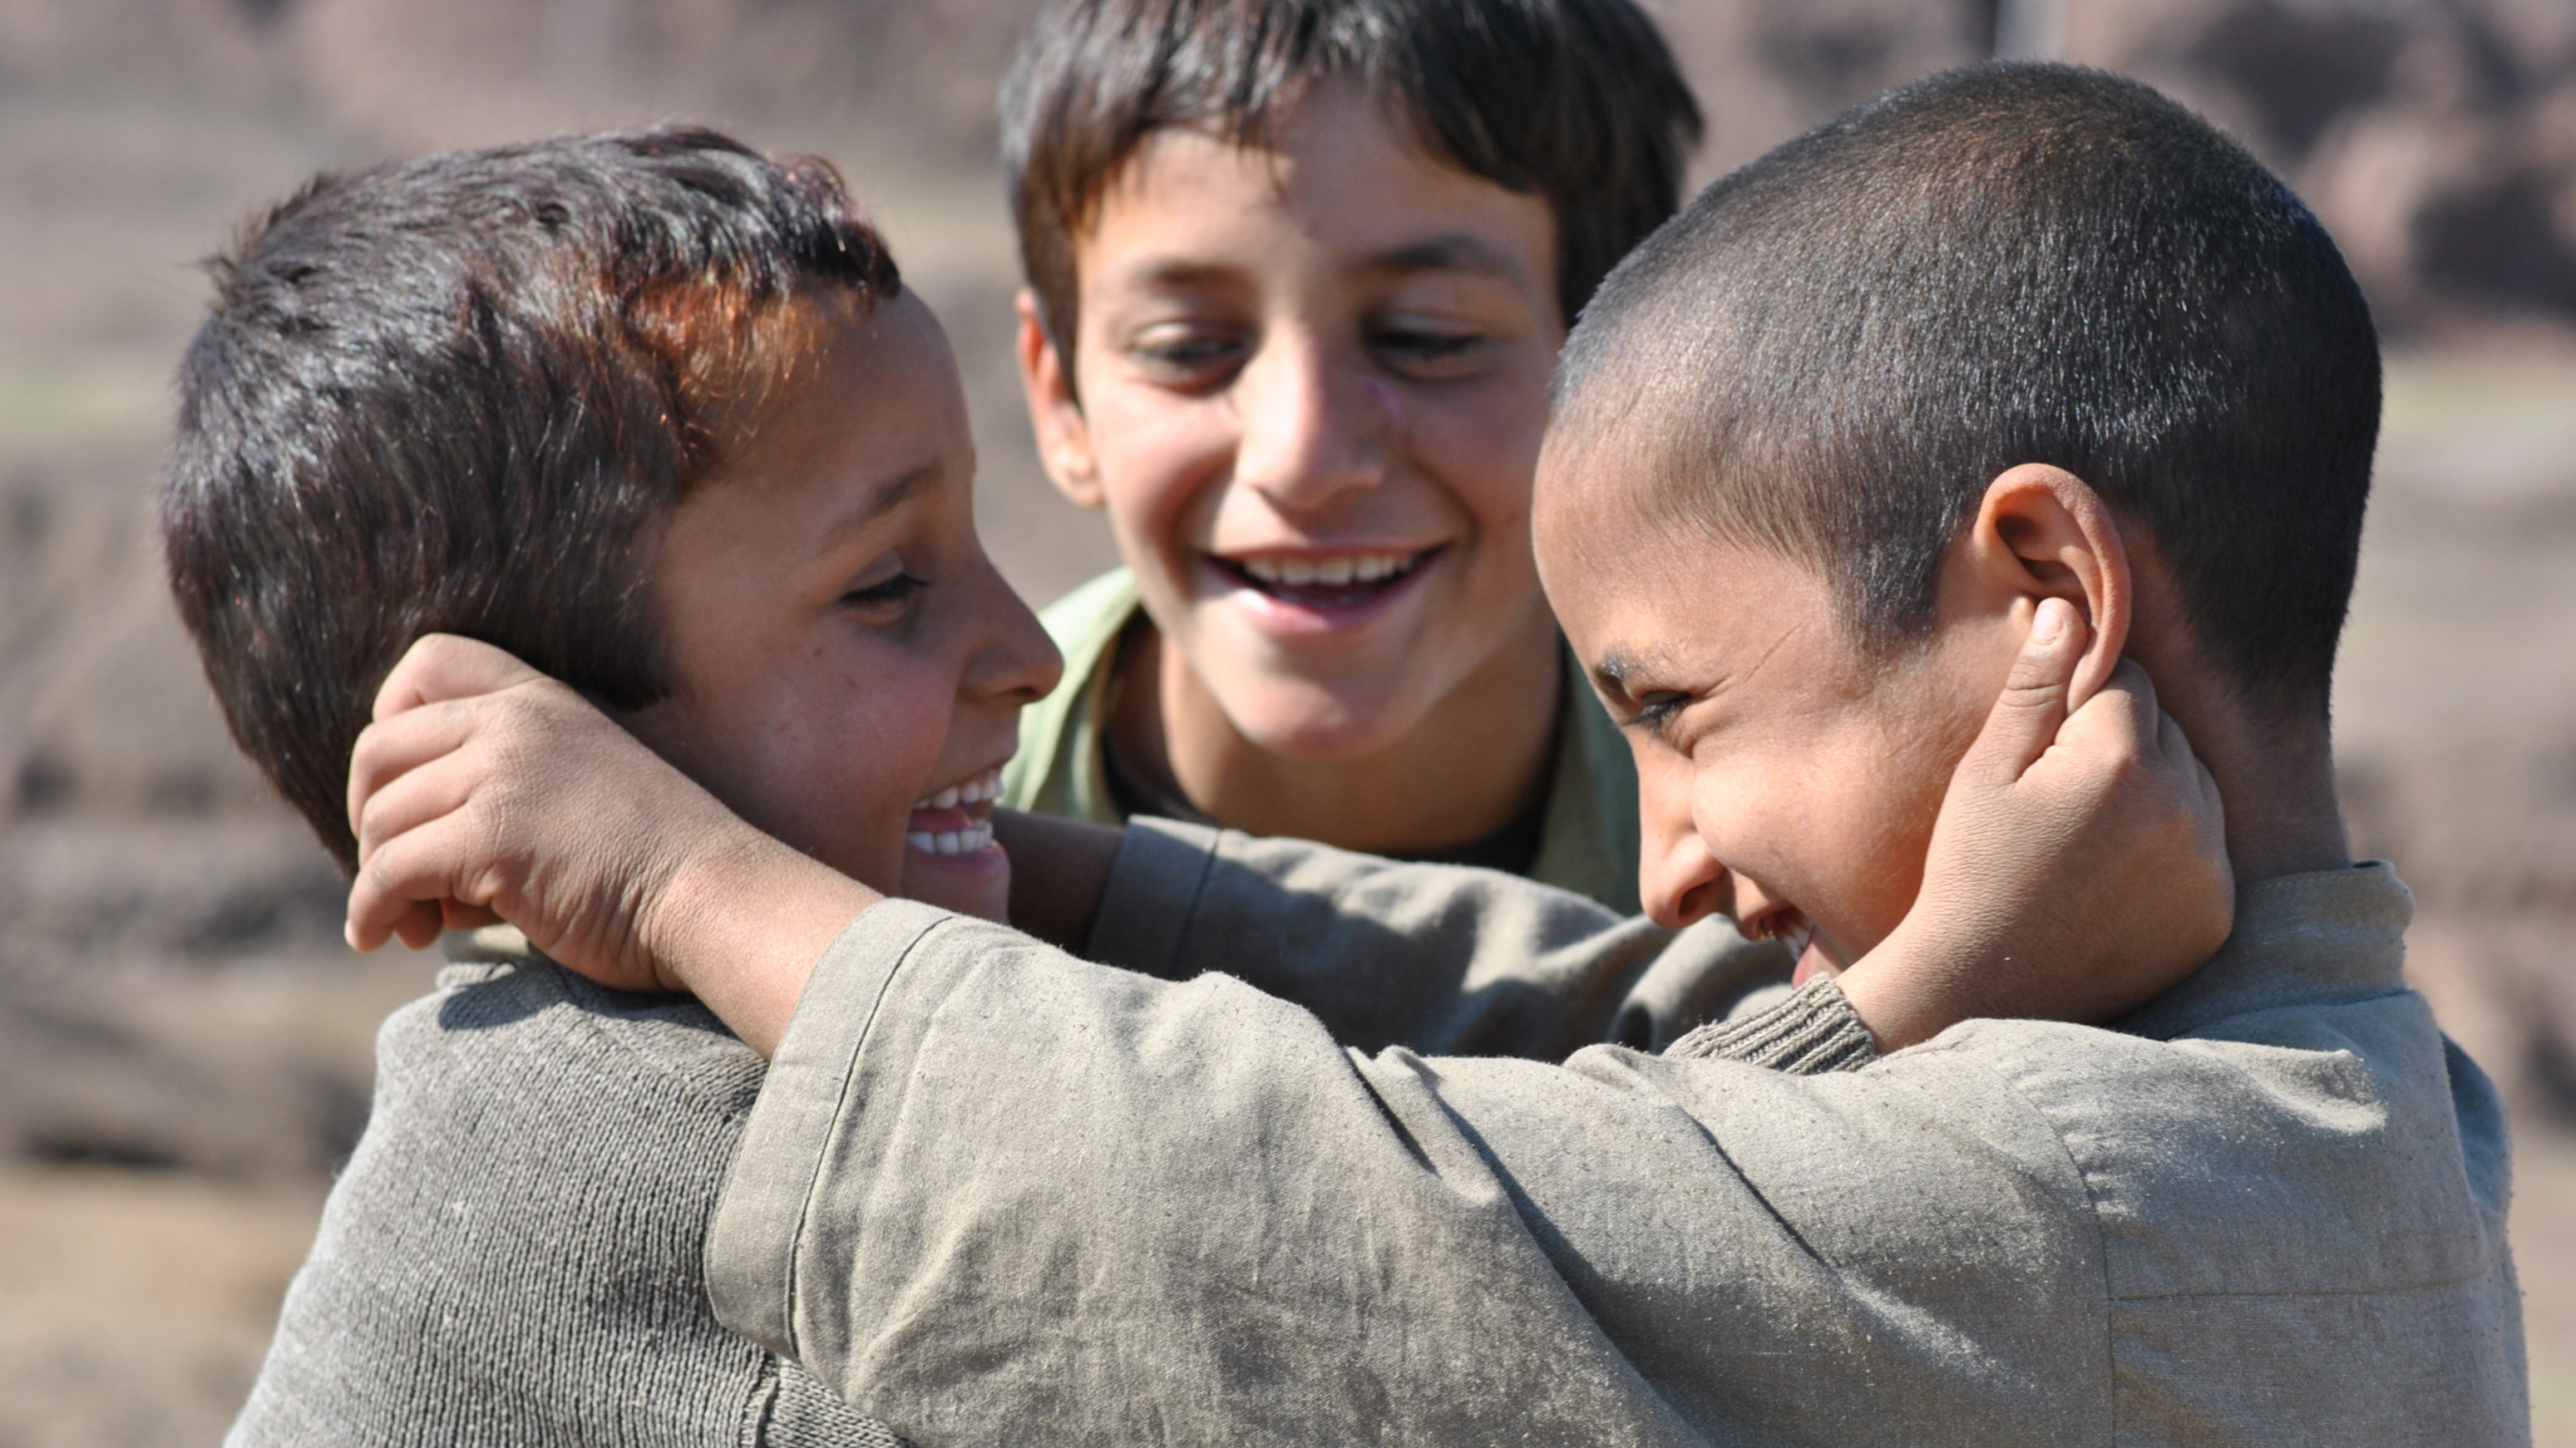 Children in North Waziristan, a mountainous region of Pakistan home to ongoing army operations against militants. Children have seen a constant armed conflict for nearly a decade now and psychiatrists worry about long-term effects on their mental health.